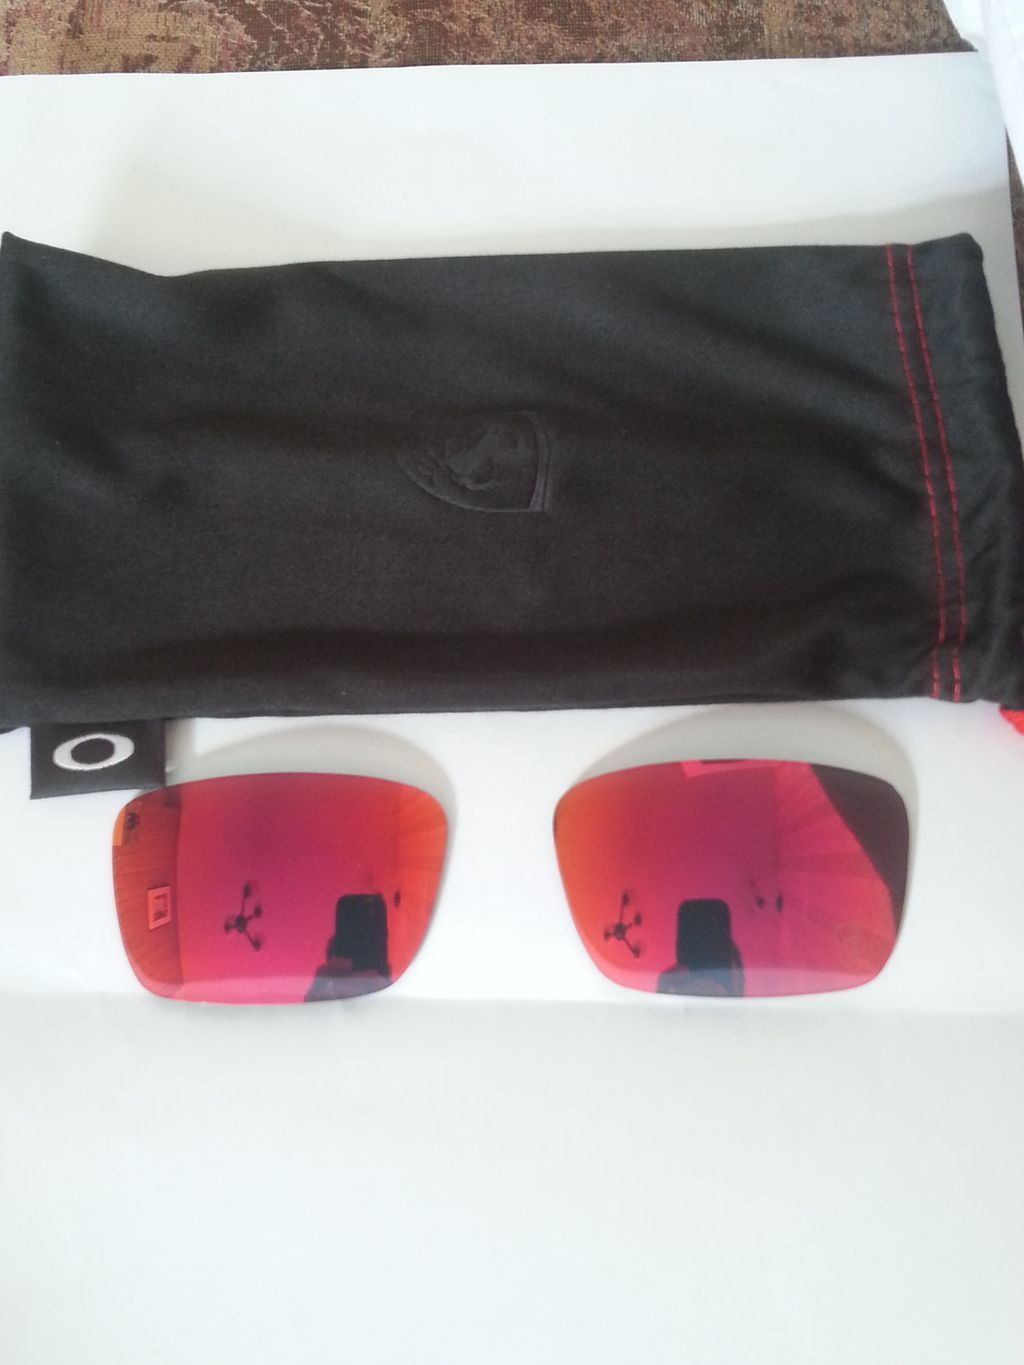 Saw these Ferrari lenses and microclear bag and bought them for $70. - 20160224_111629.jpg